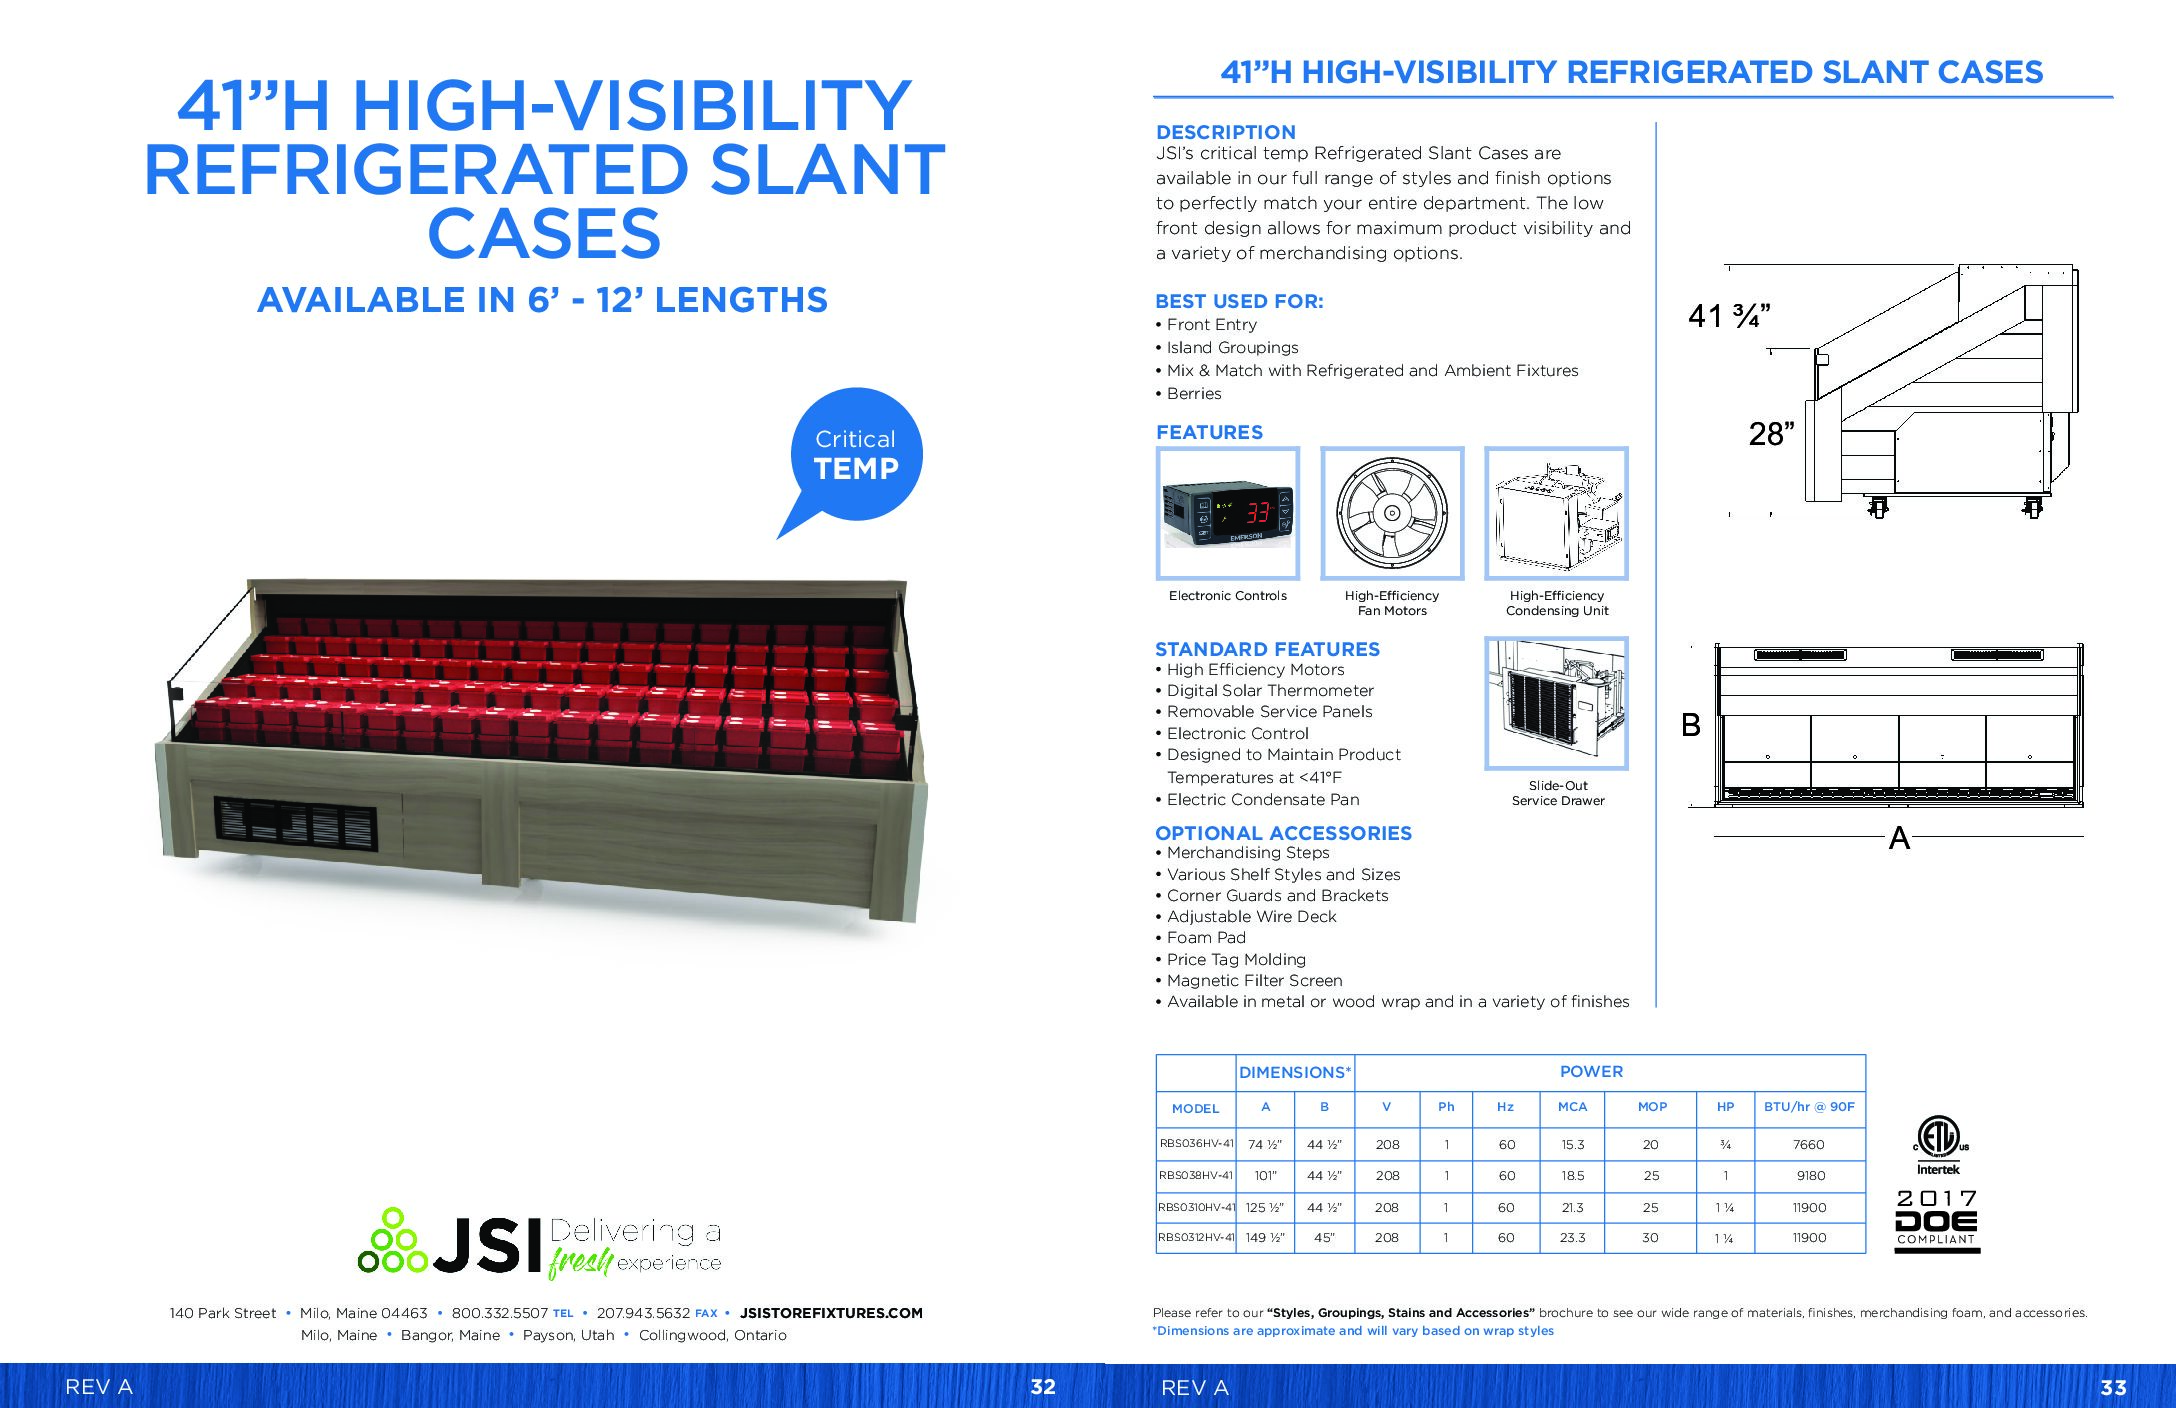 41in High-Visibility Refrigerated Slant Cases 6ft-12ft (PDF)